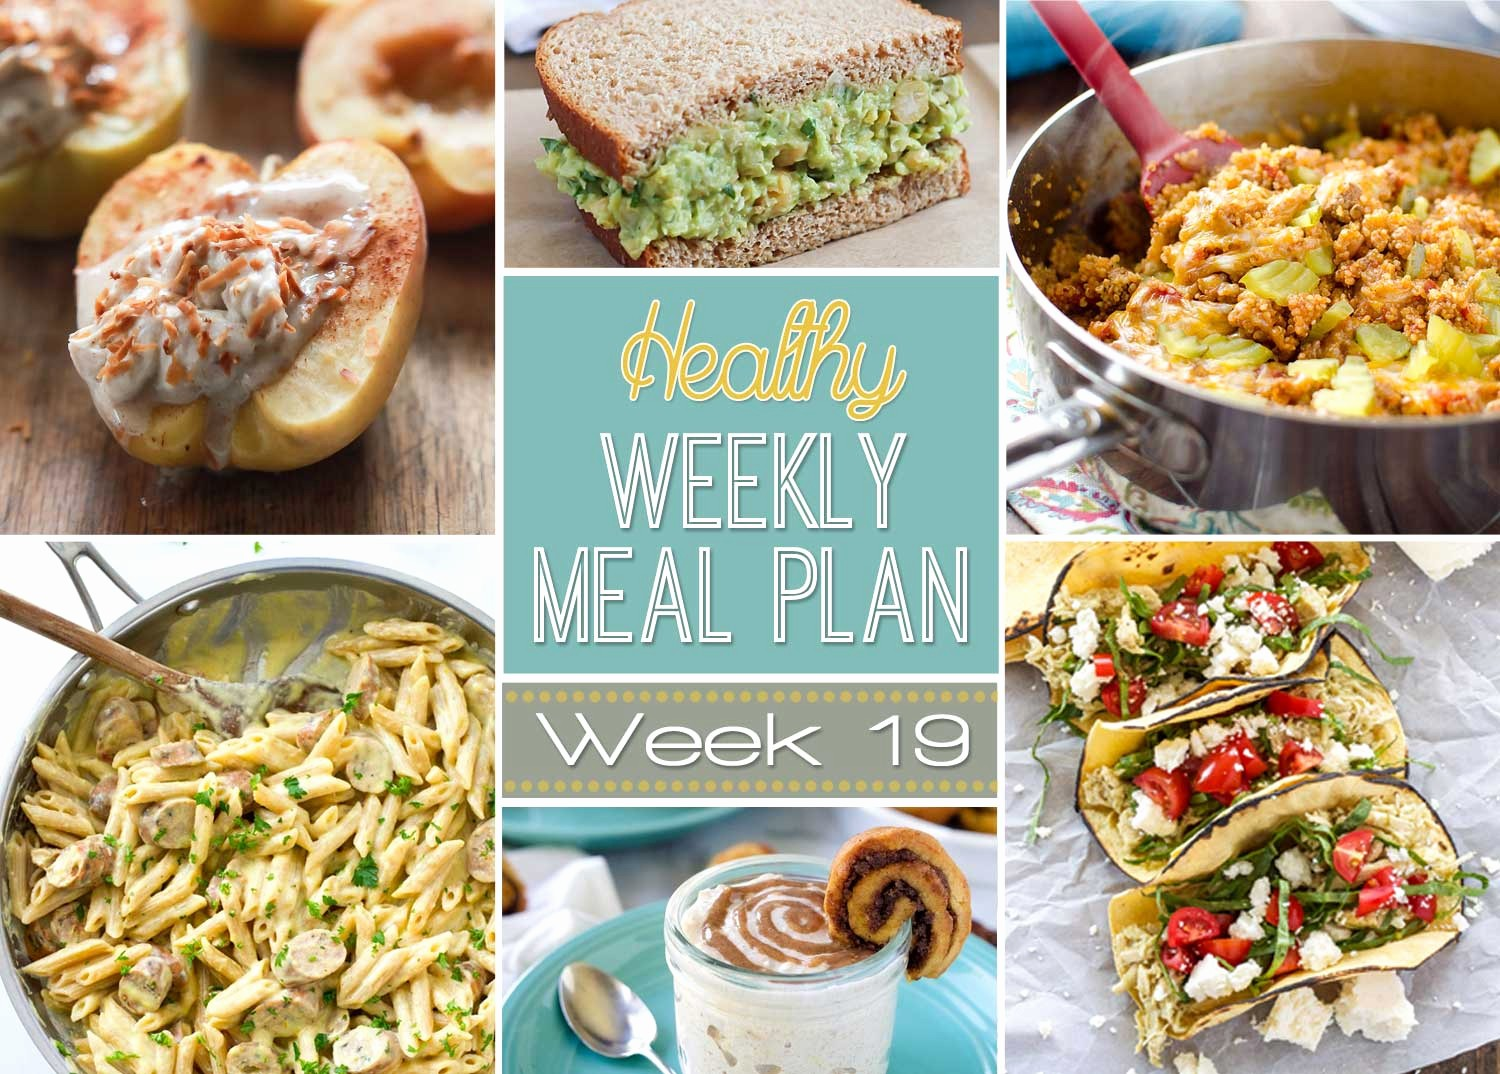 Weekly Meal and Snack Planner Awesome Healthy Meal Plan Week 19 Recipe Runner